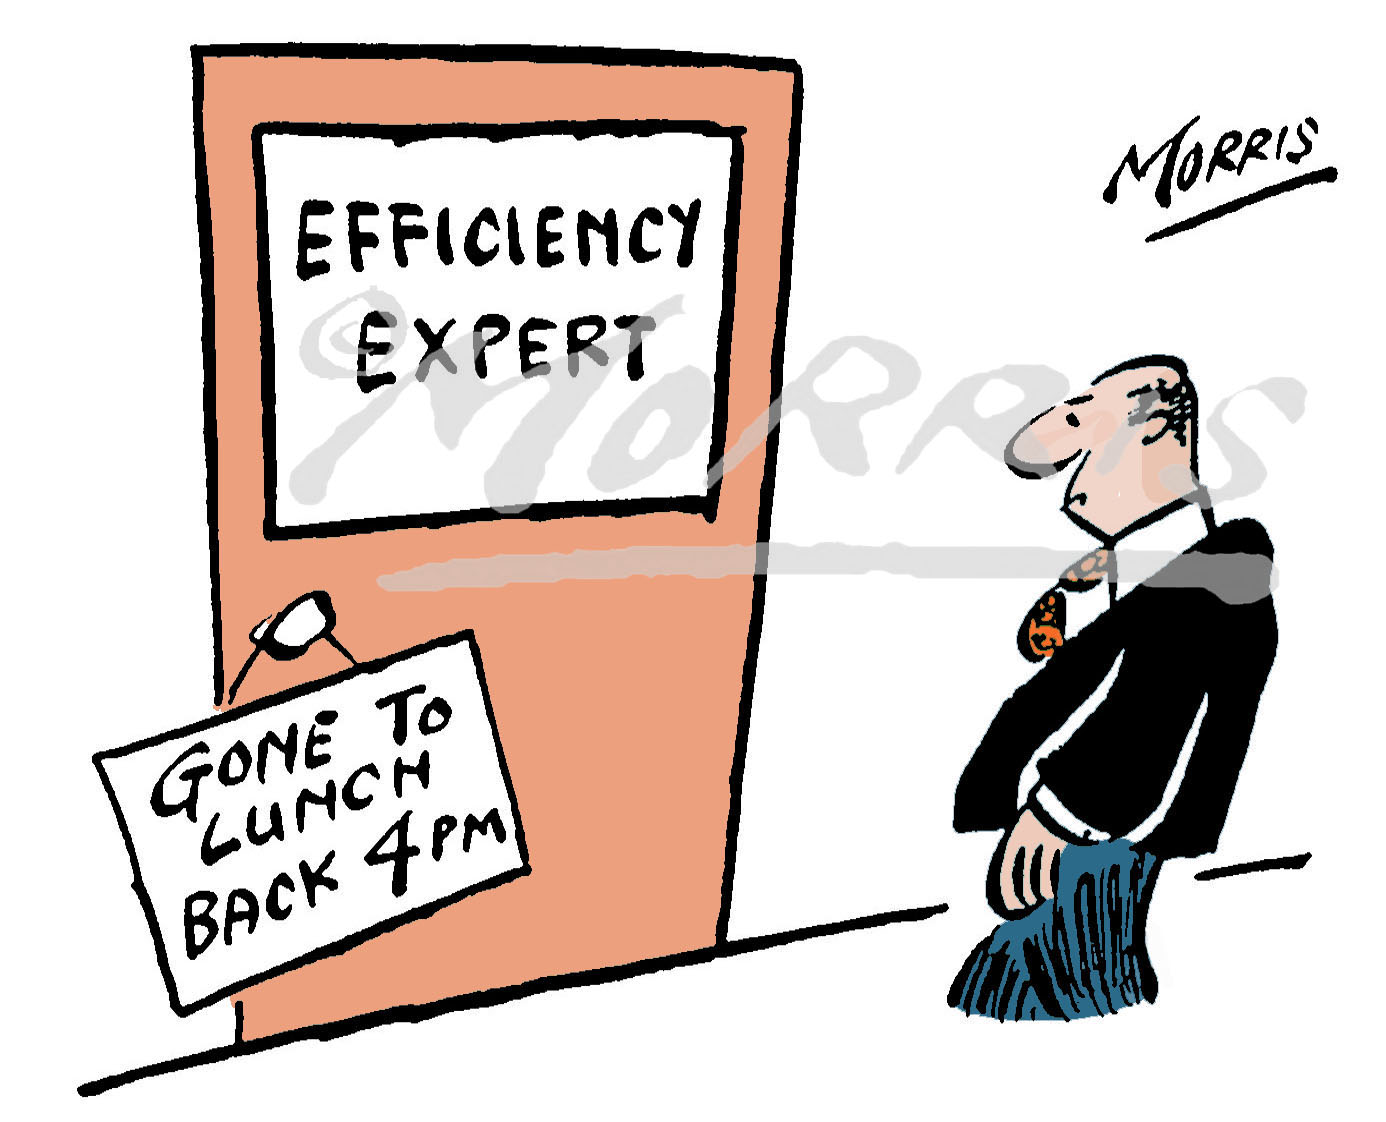 Efficiency consultant expert office business cartoon – Ref: 0245col